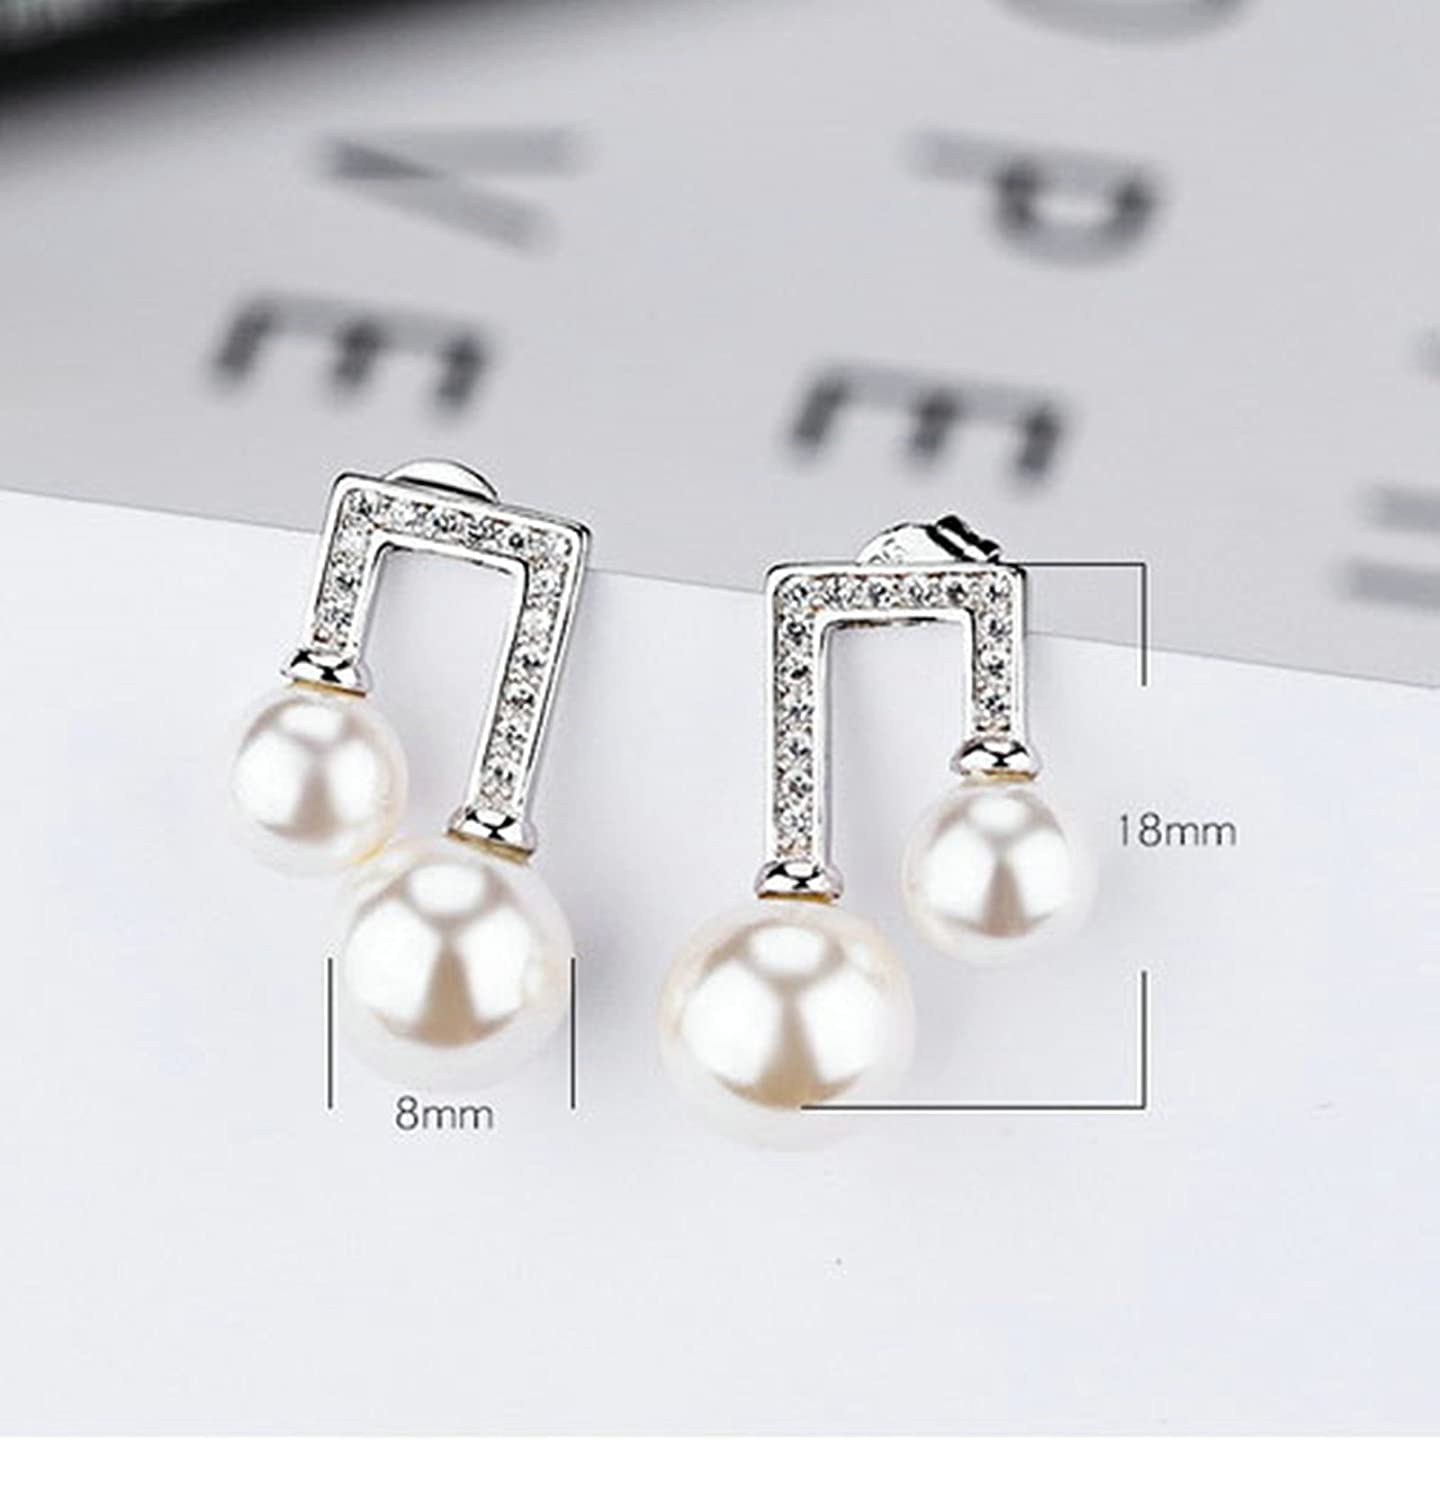 EoCot Gold Plated Earring Double Pearls with Zirconia White Stud Earrings for Women